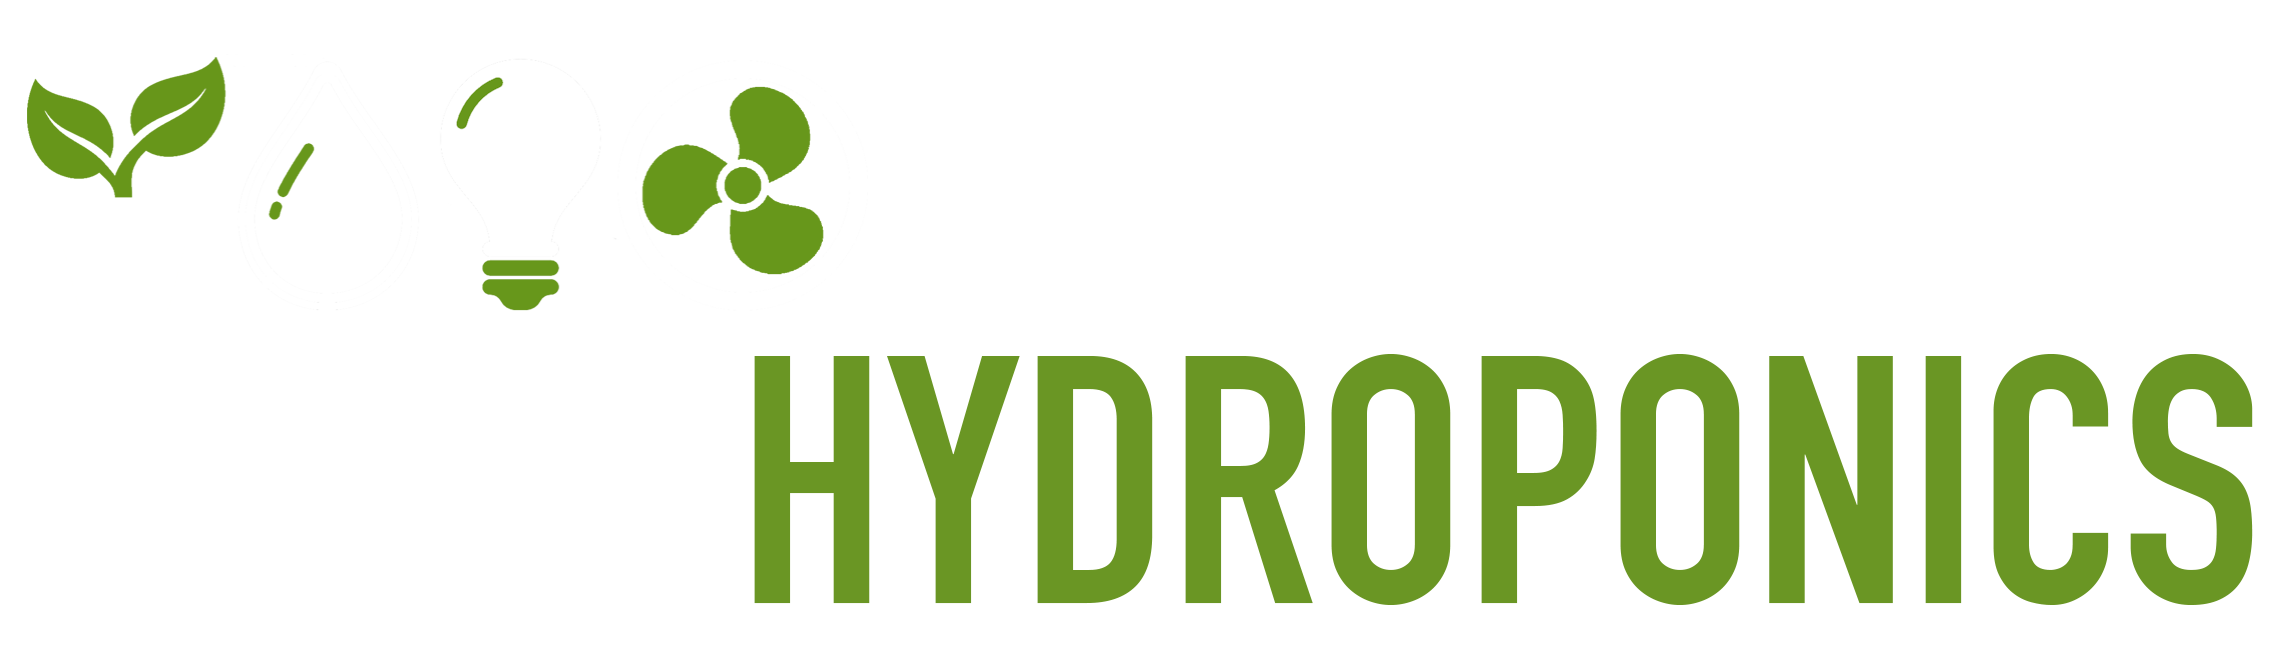 Leeds Hydroponics, Leading The Way